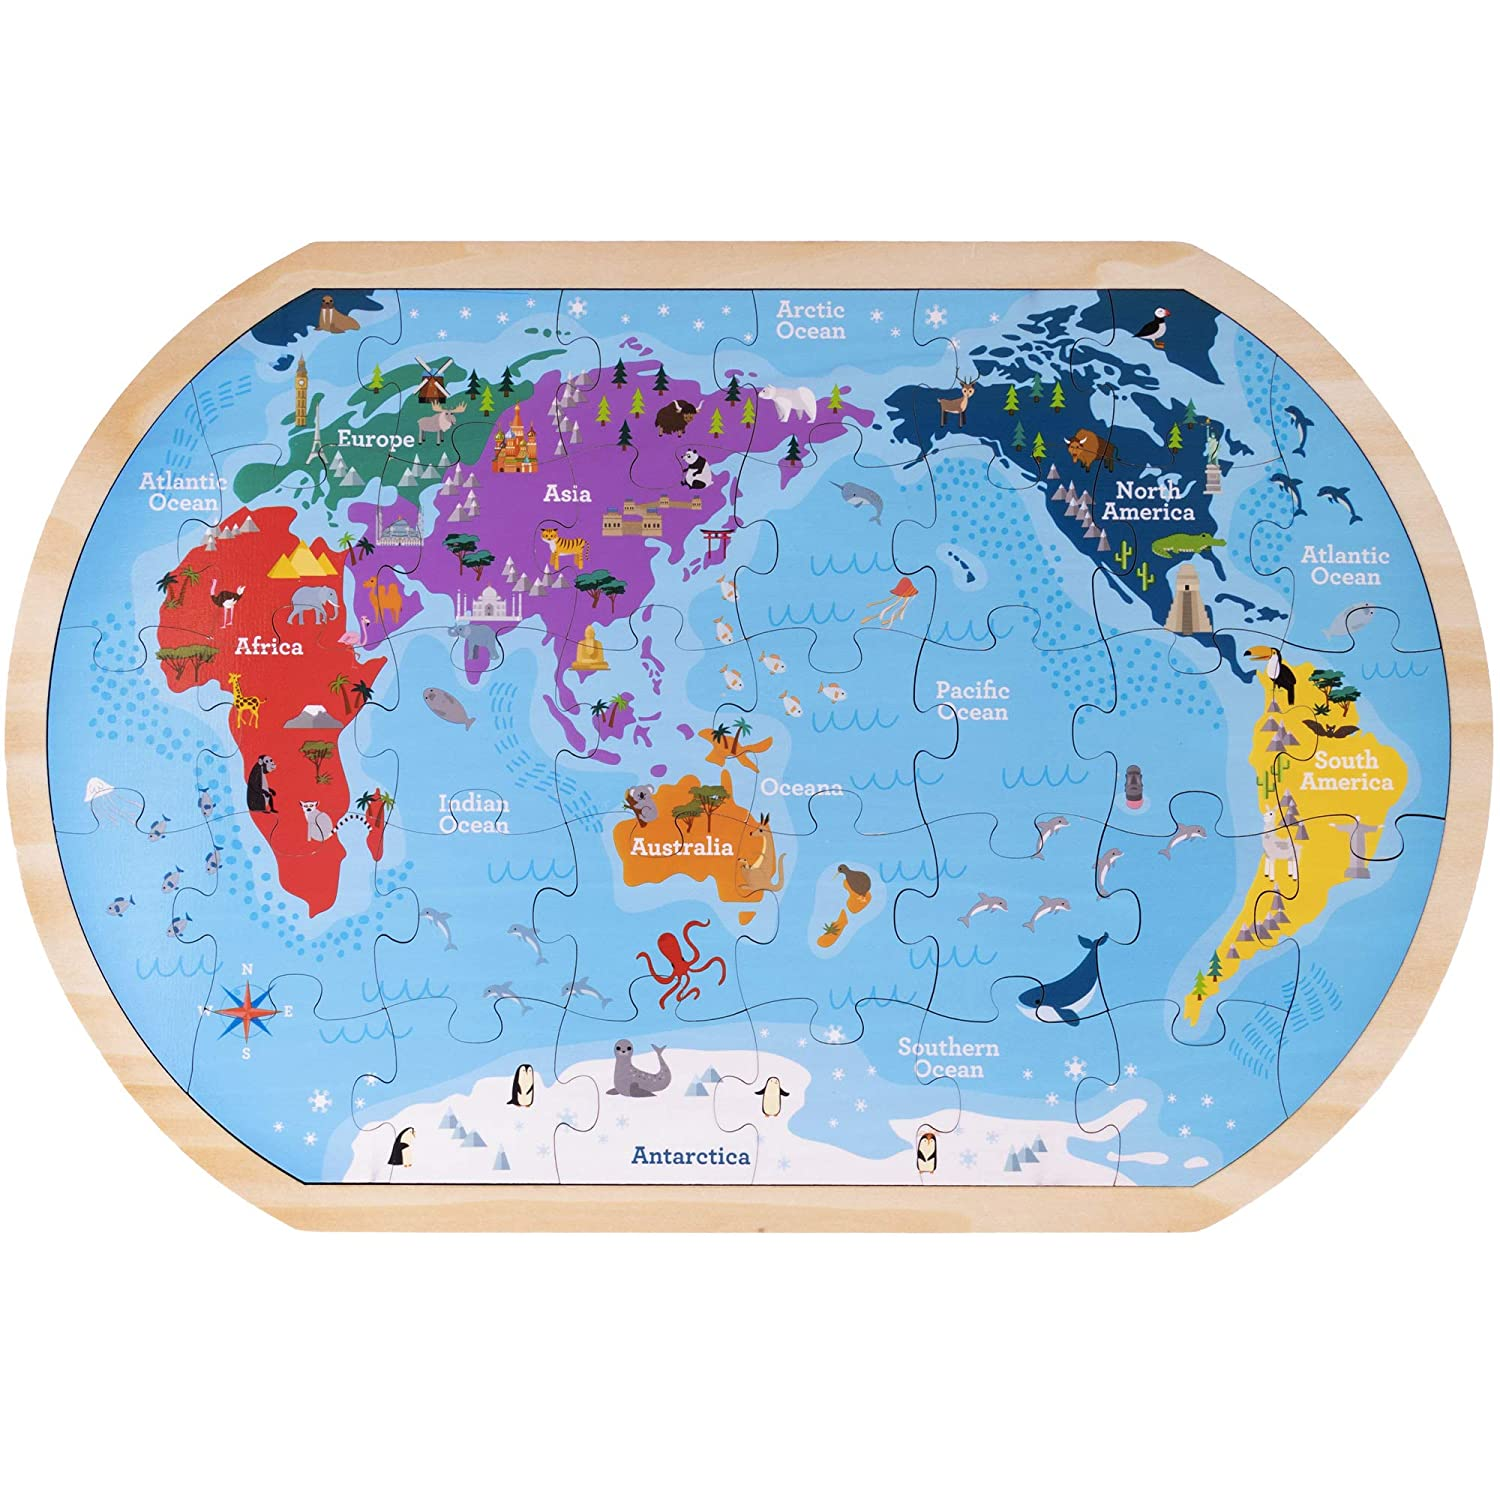 Whole Map Of The World.Amazon Com Professor Poplar S Whole Wide World Map Jigsaw Puzzle